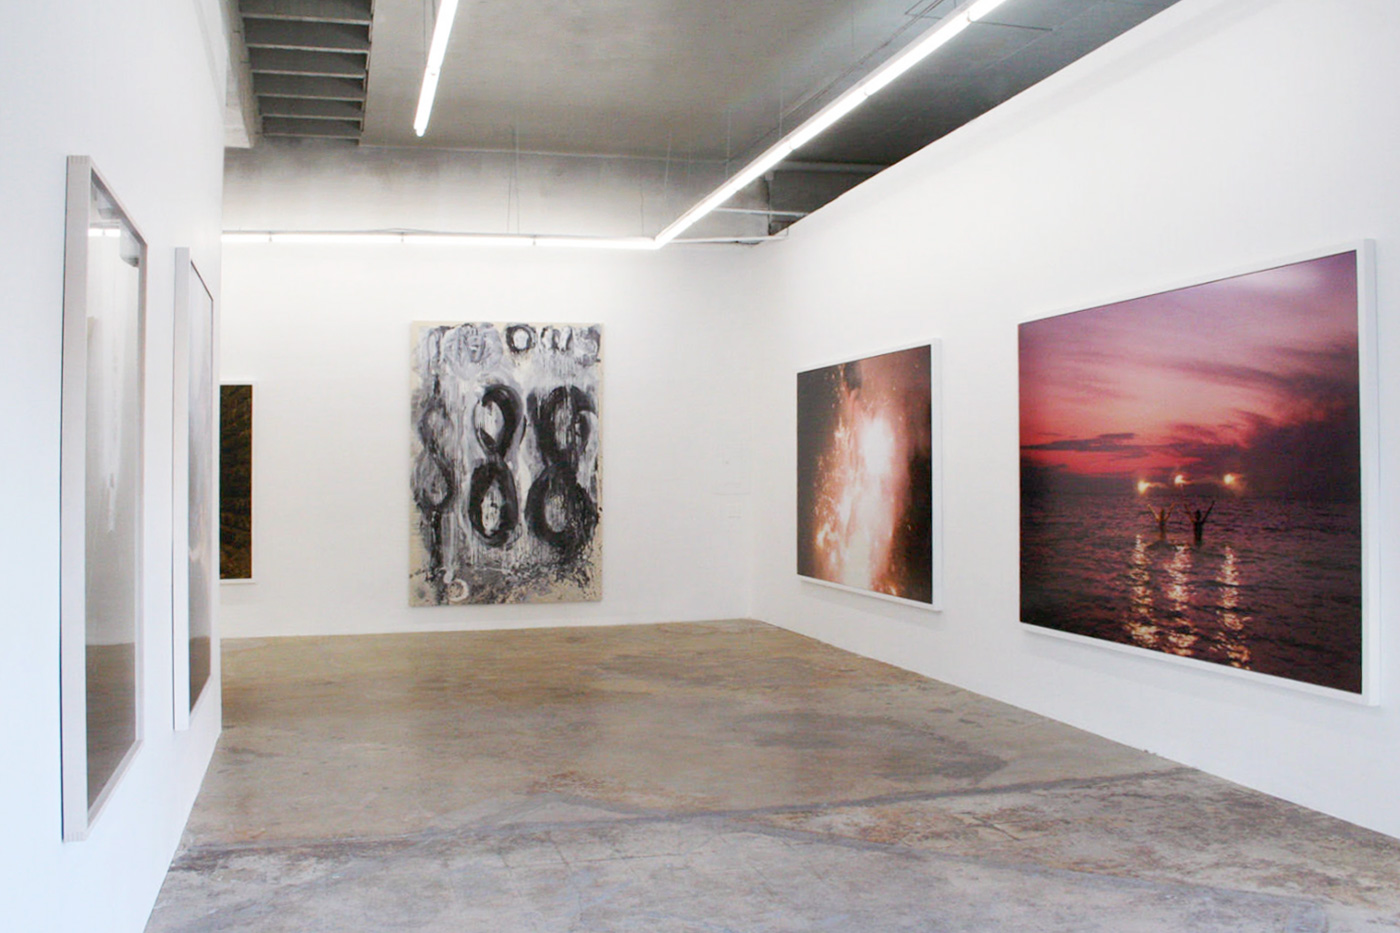 2011_The_Trilogy_Exhibition_The_Ring_Art_Center_Miami_FL_6_web.jpg